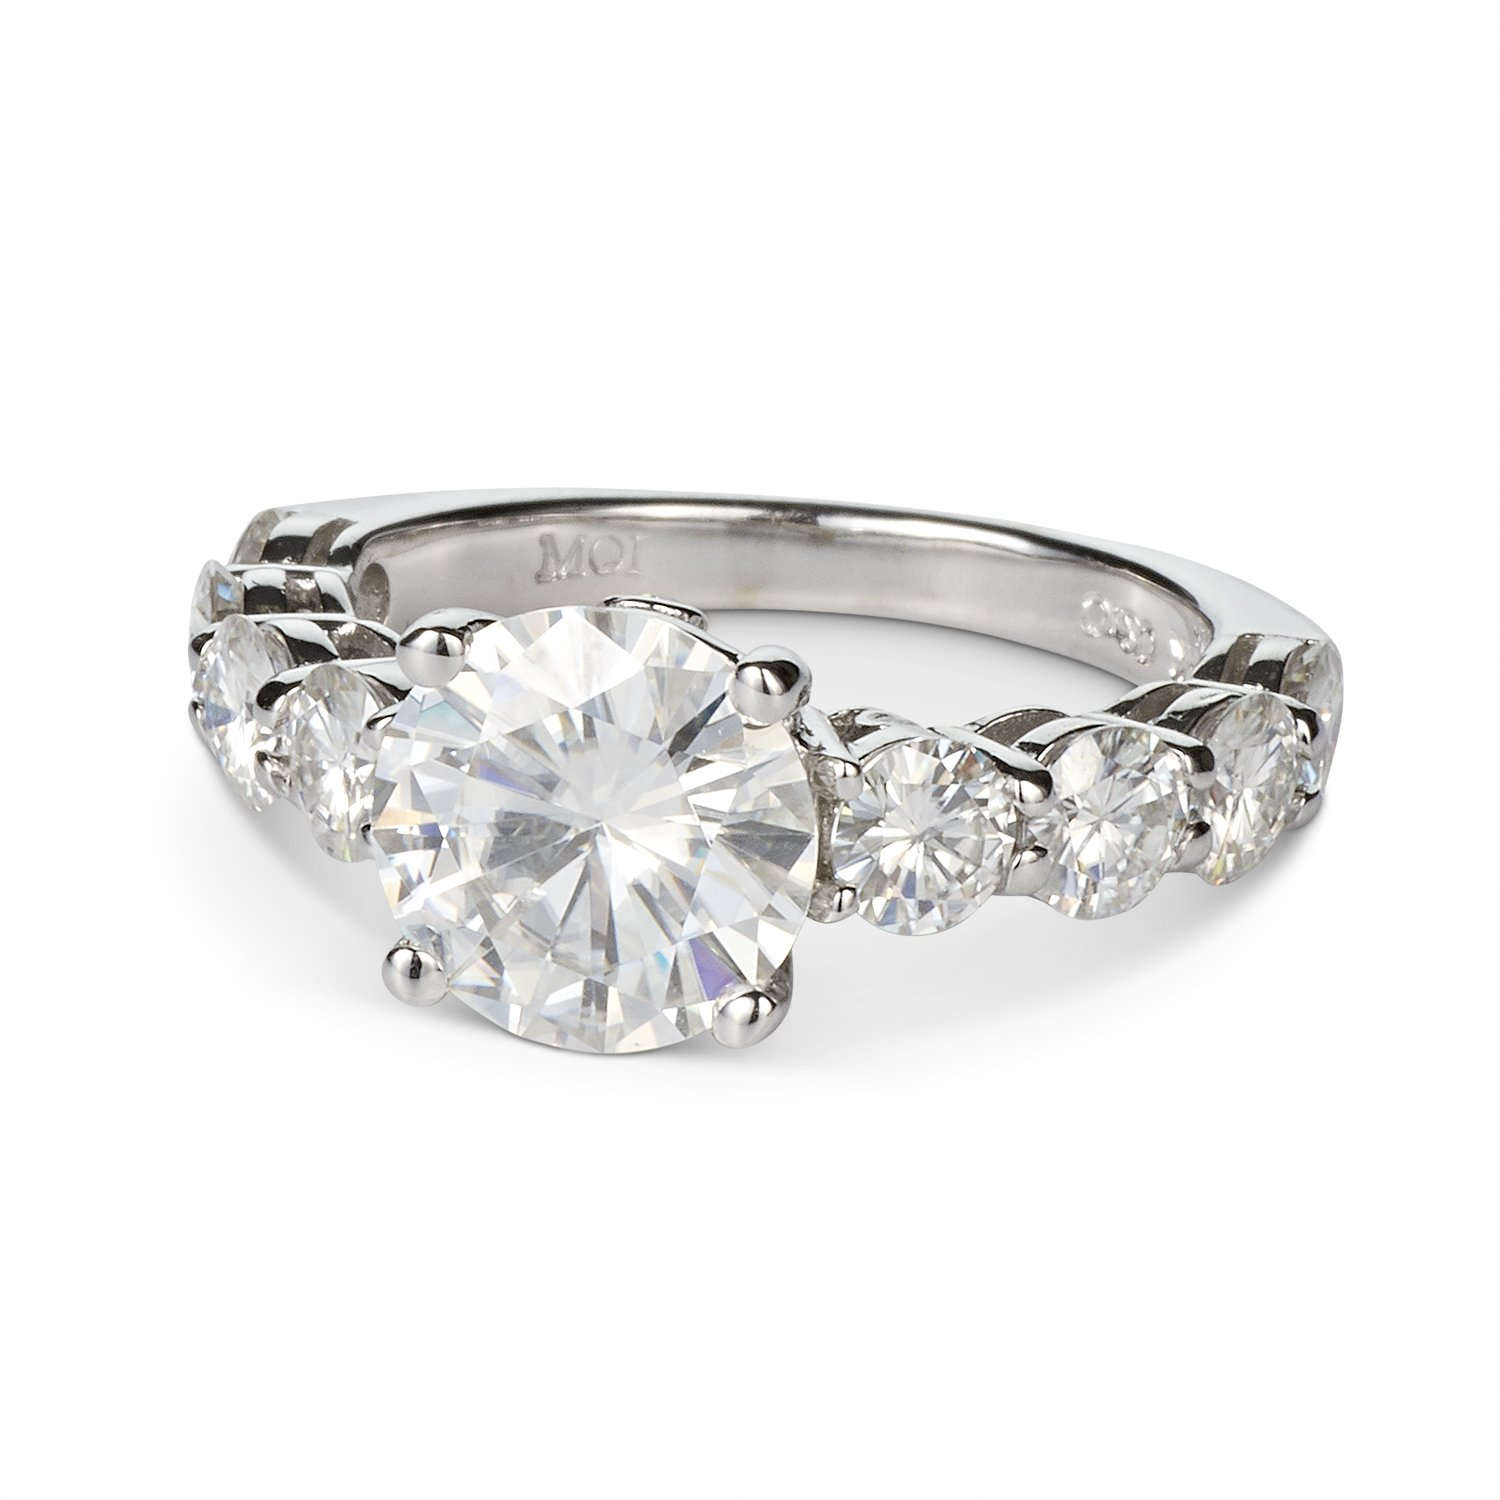 Forever One Round 9.0mm Moissanite Ring-size 7, 4.58cttw DEW (G-H-I) By Charles & Colvard